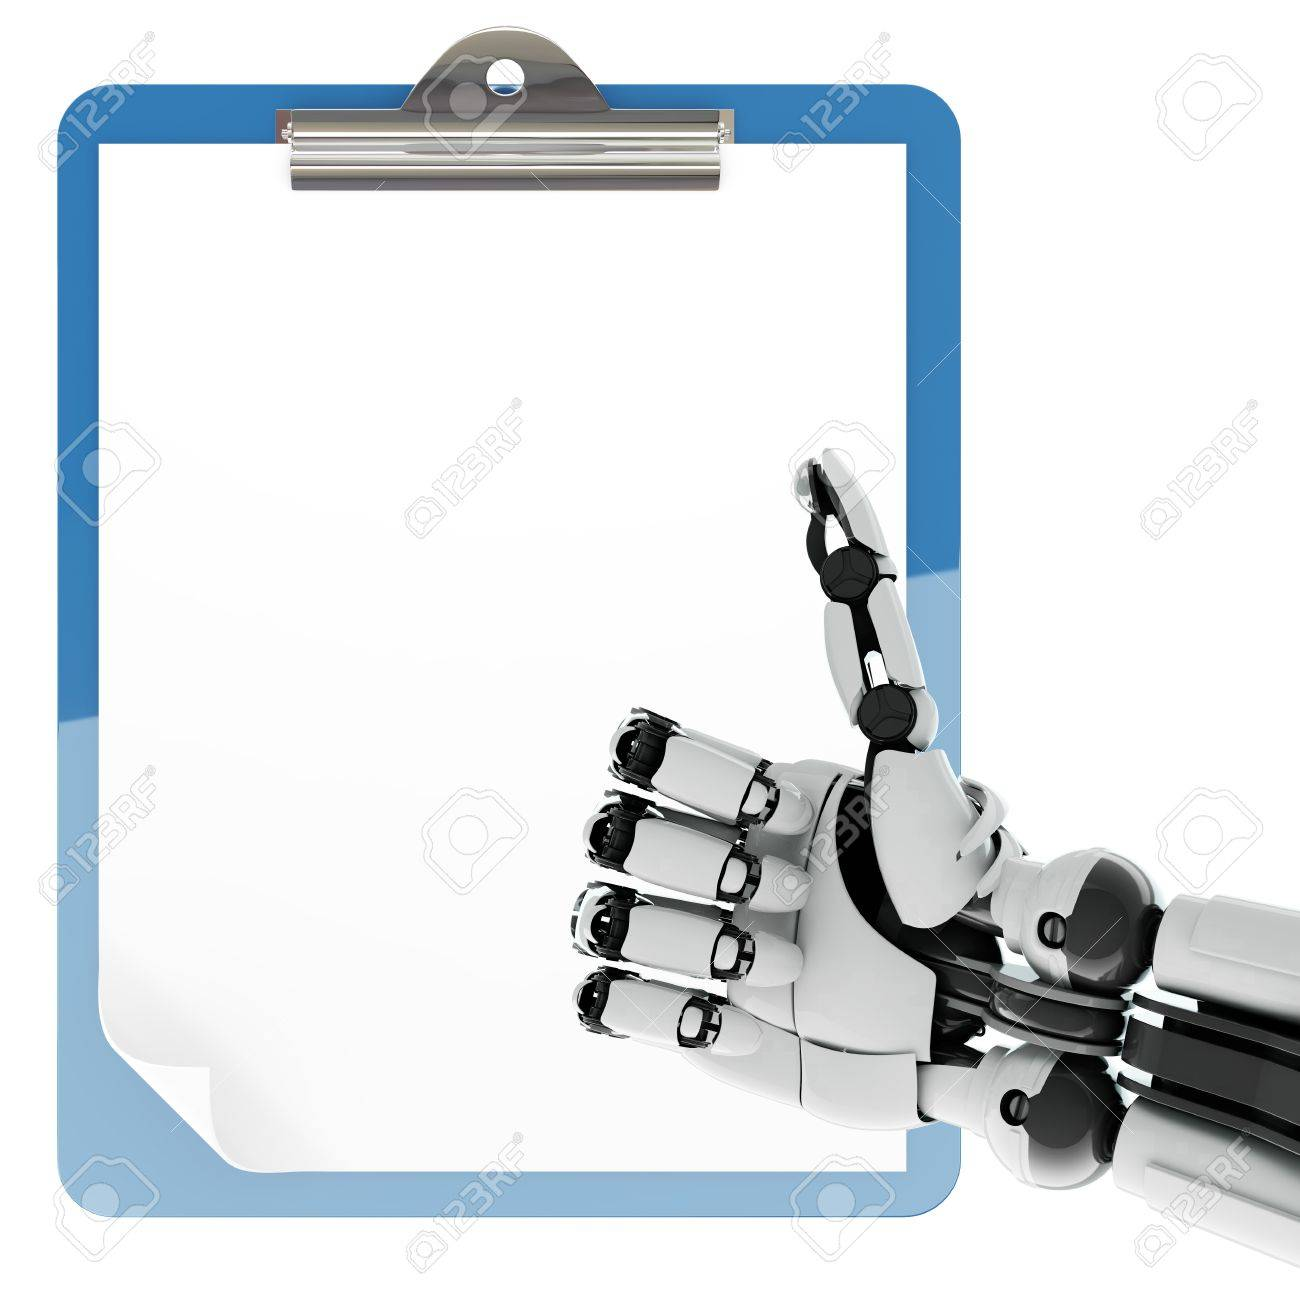 Isolated robotic arm showing thumbs up and paper pad holder on white background Stock Photo - 17697213